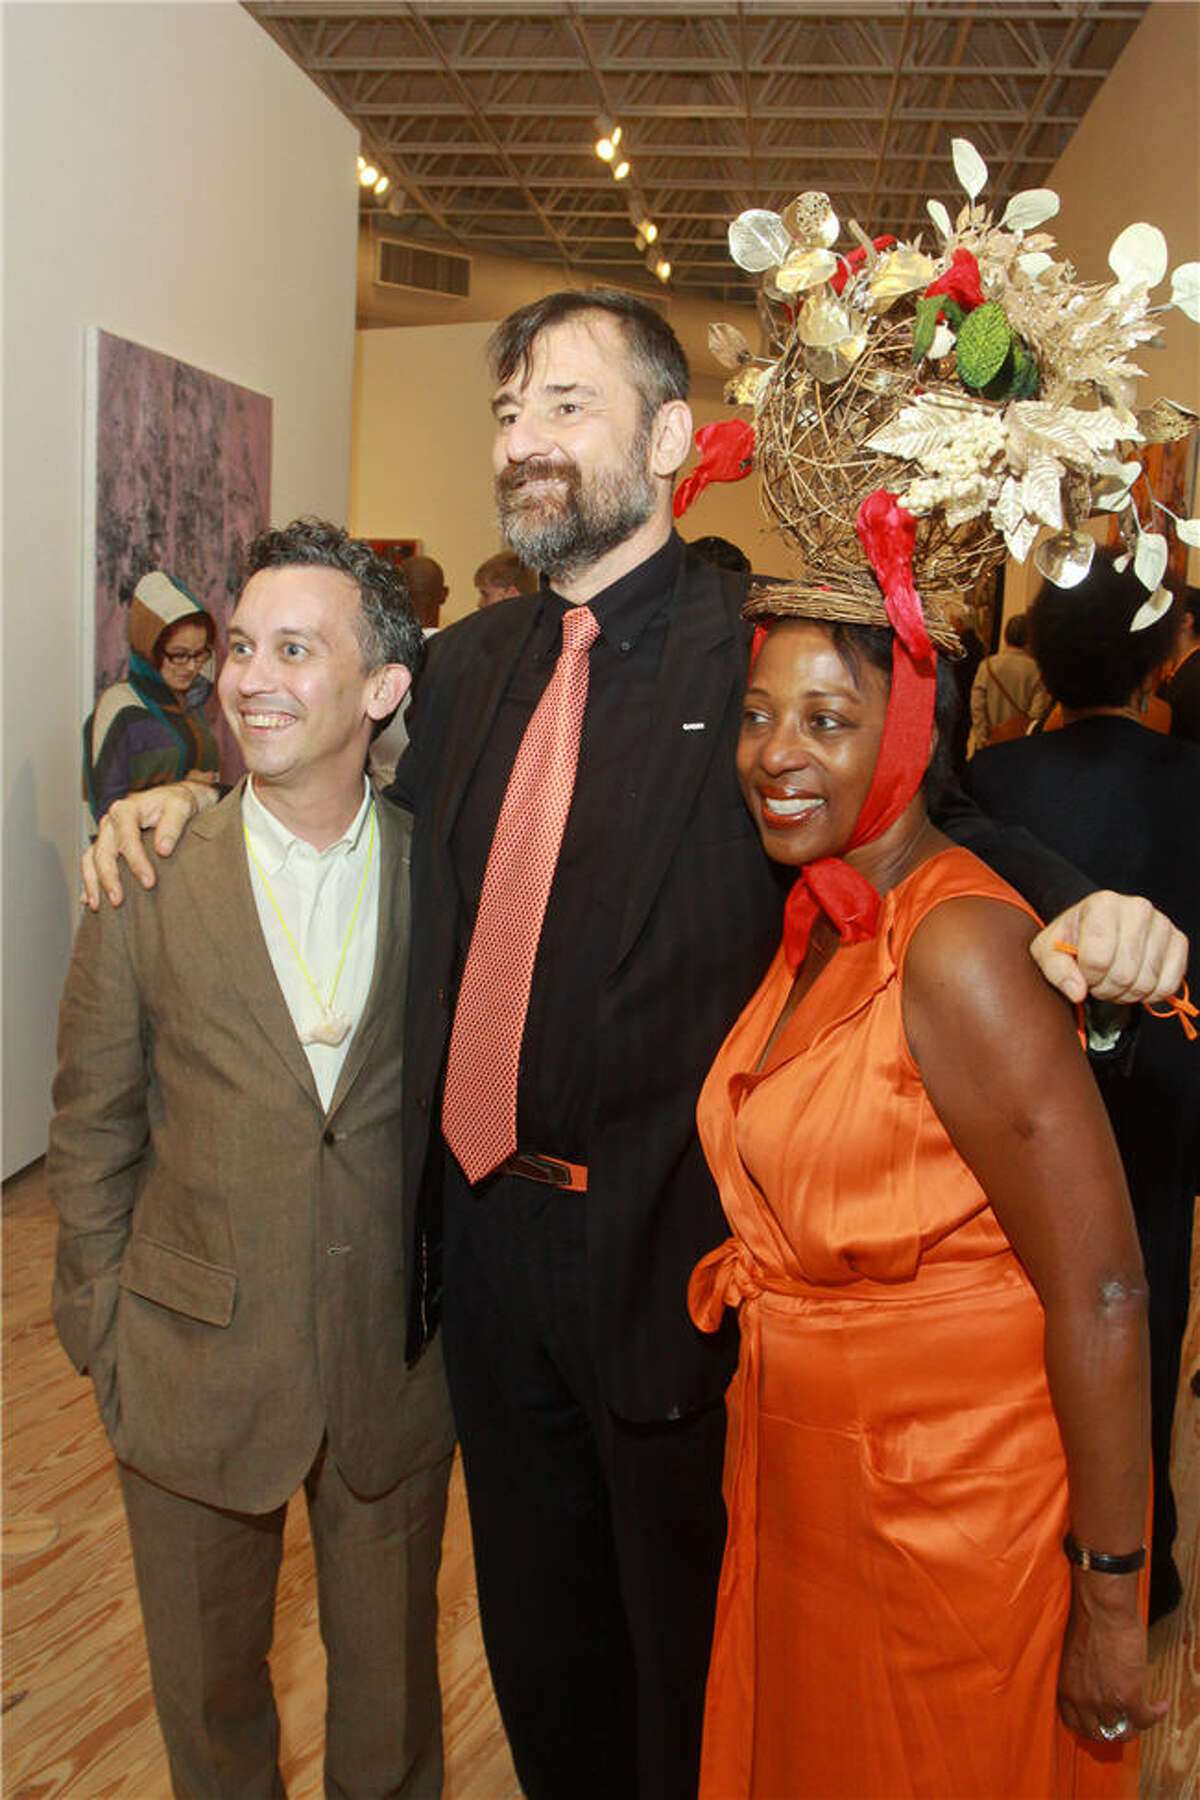 Curator Dean Daderko, from left, director Bill Arning and curator Valerie Cassell Oliver